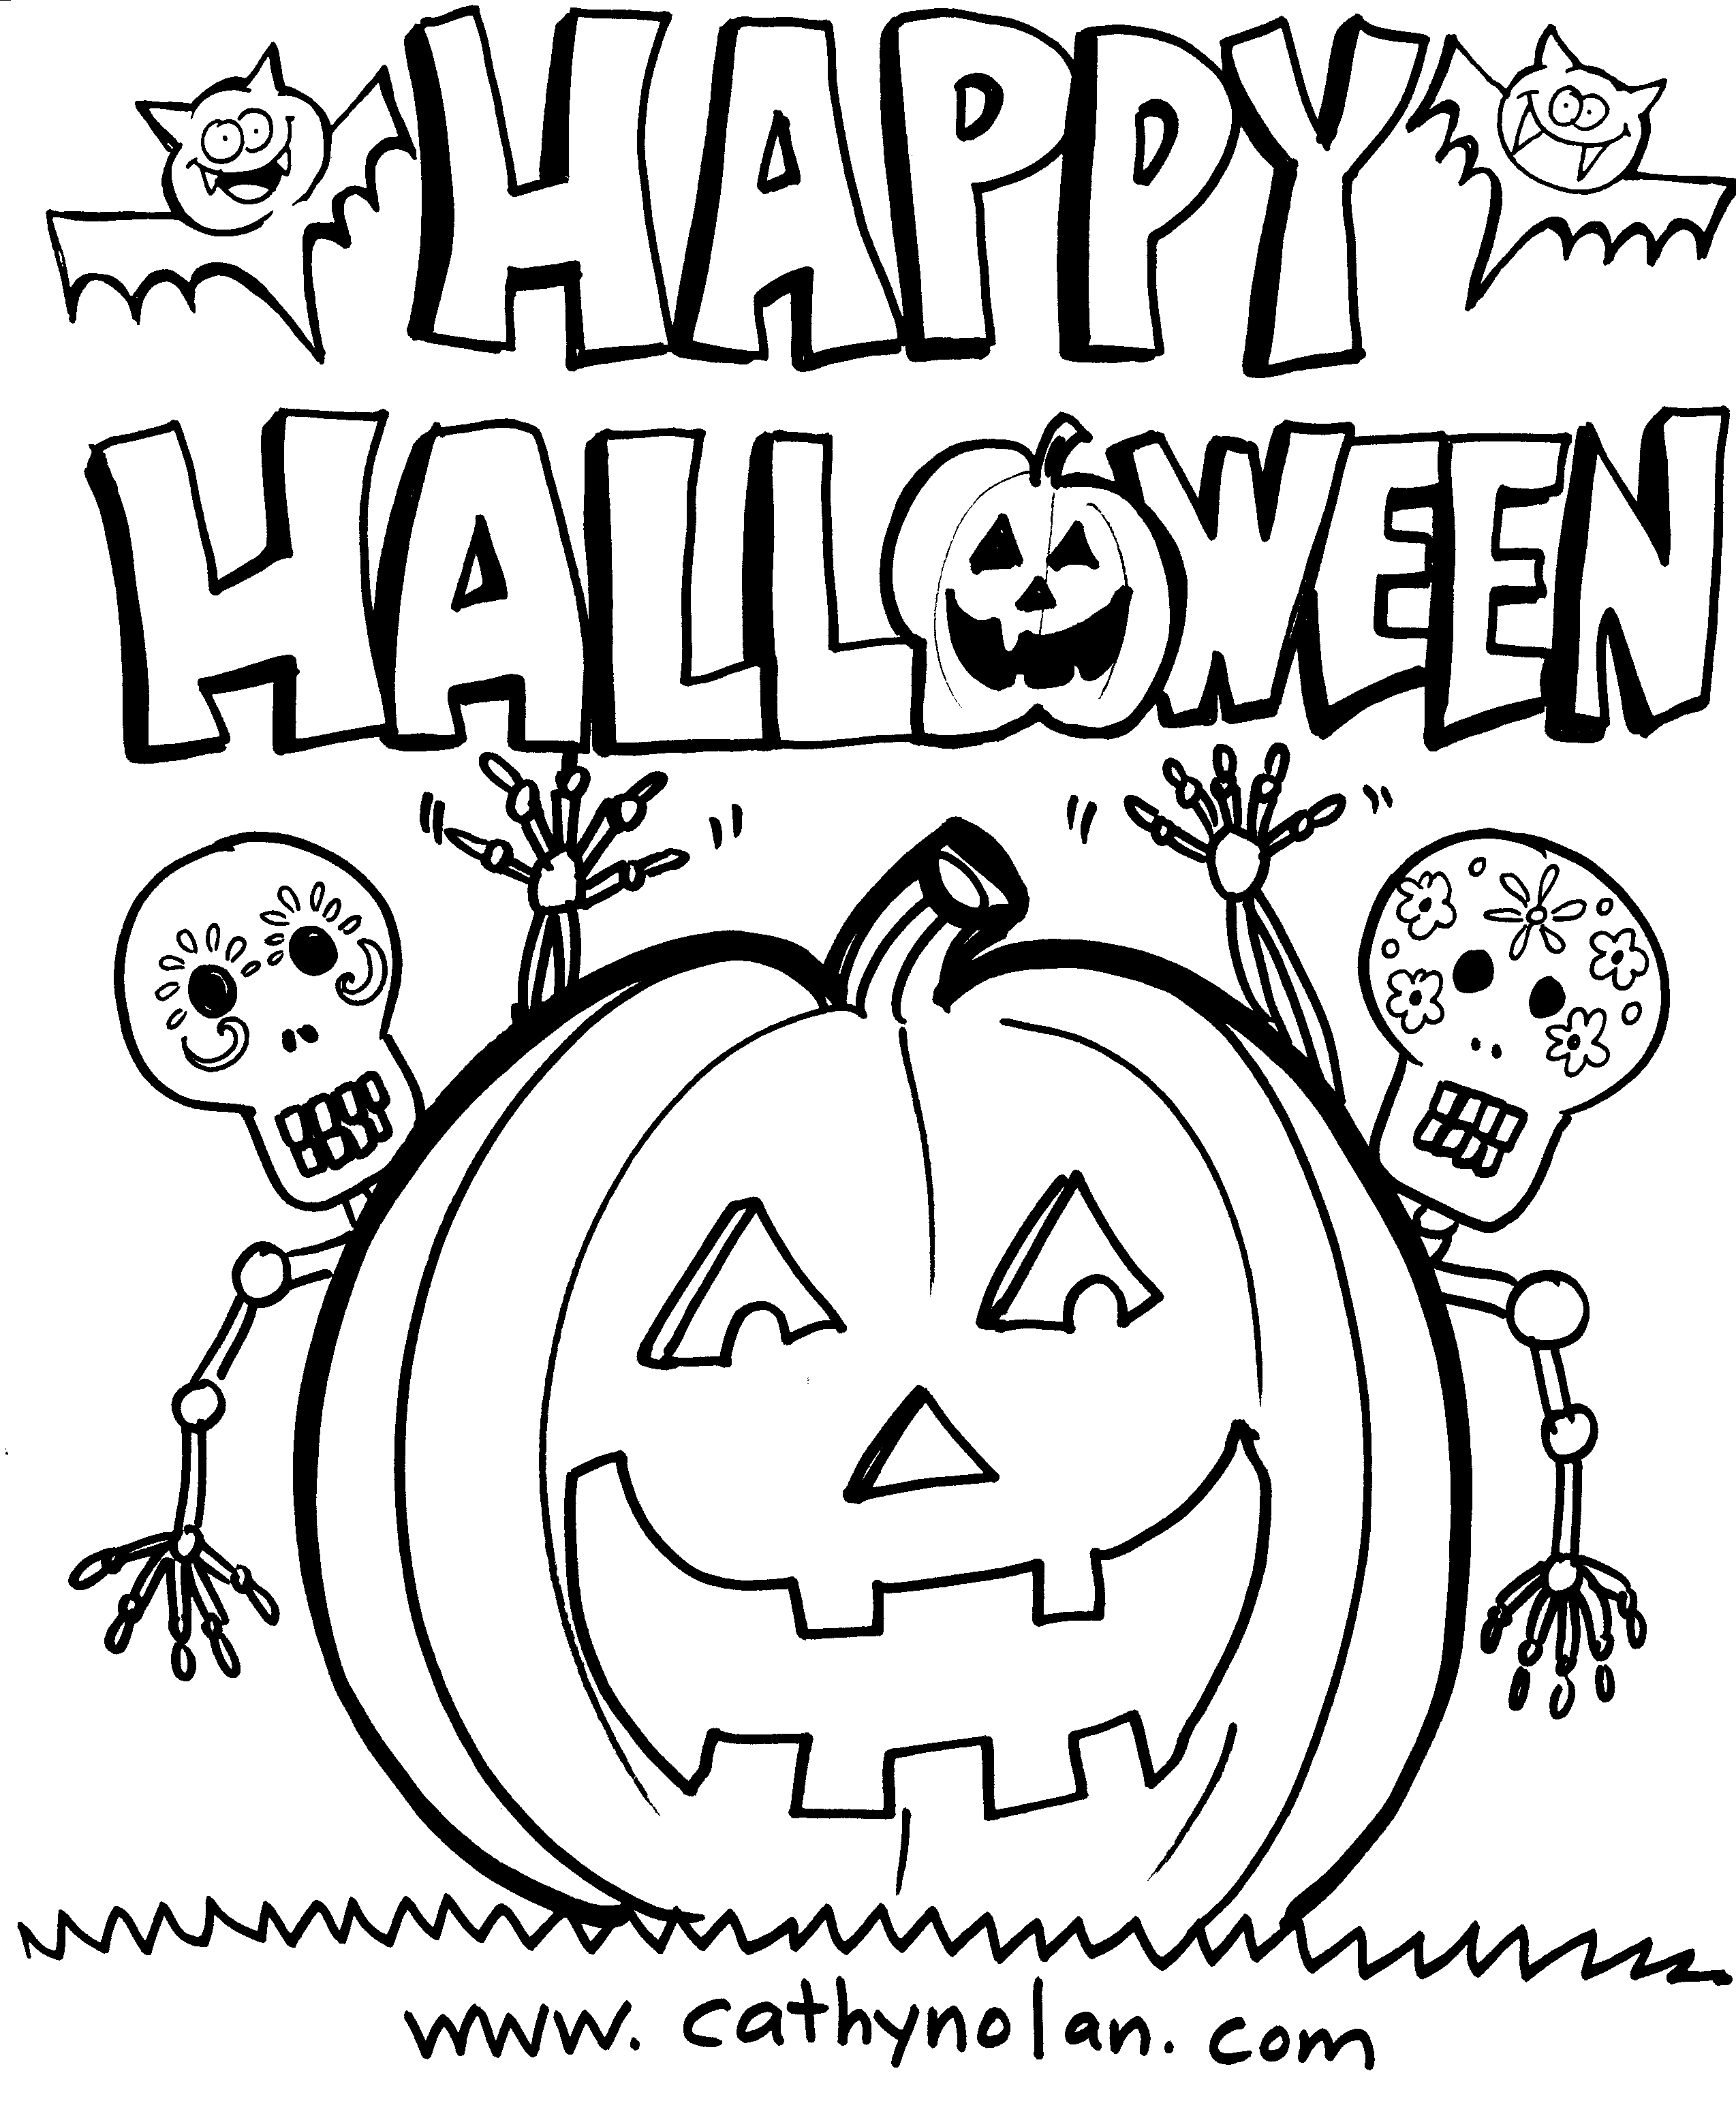 Downloadable Happy Halloween Coloring Sheets For The Kids